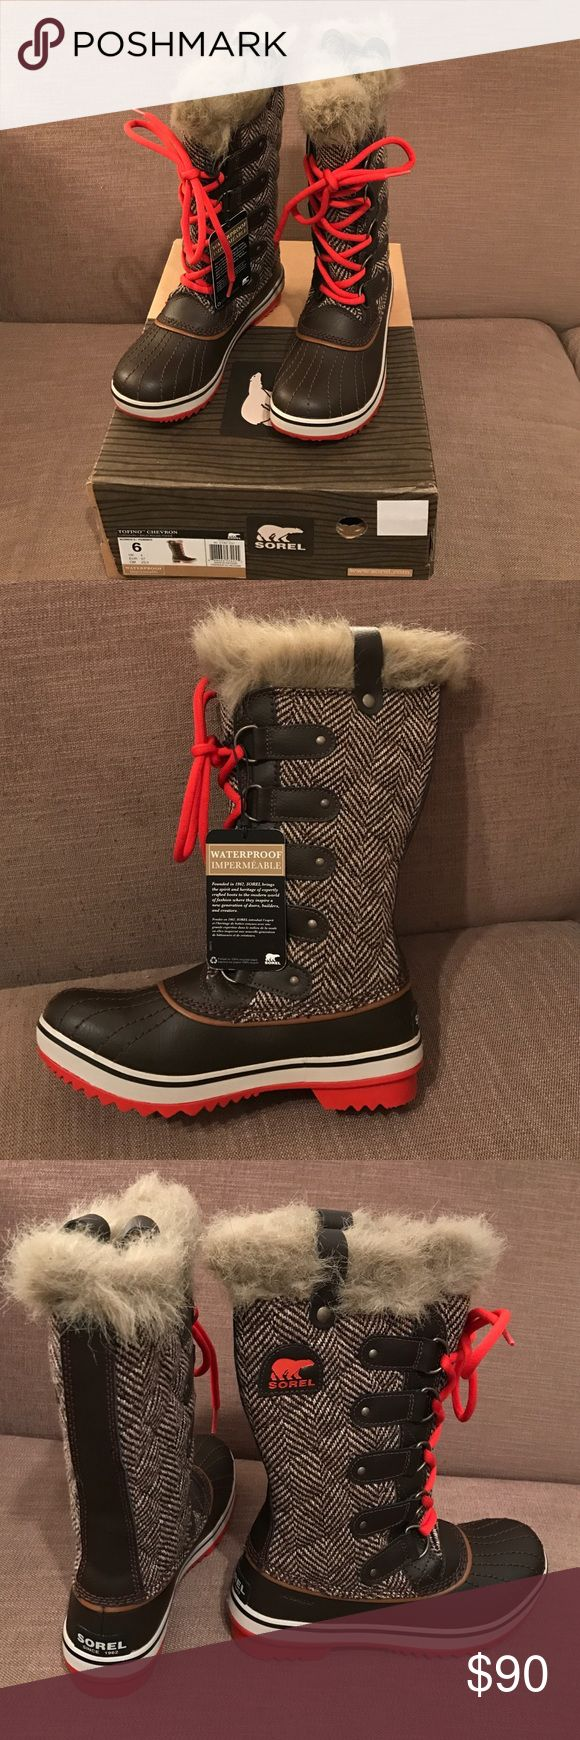 Sorel Boots- NWT. Winter boots Never worn.  Weatherproof winter boots. Herringbone detail and red laces. Faux fur trim. Traction soles. Sorel Shoes Winter & Rain Boots